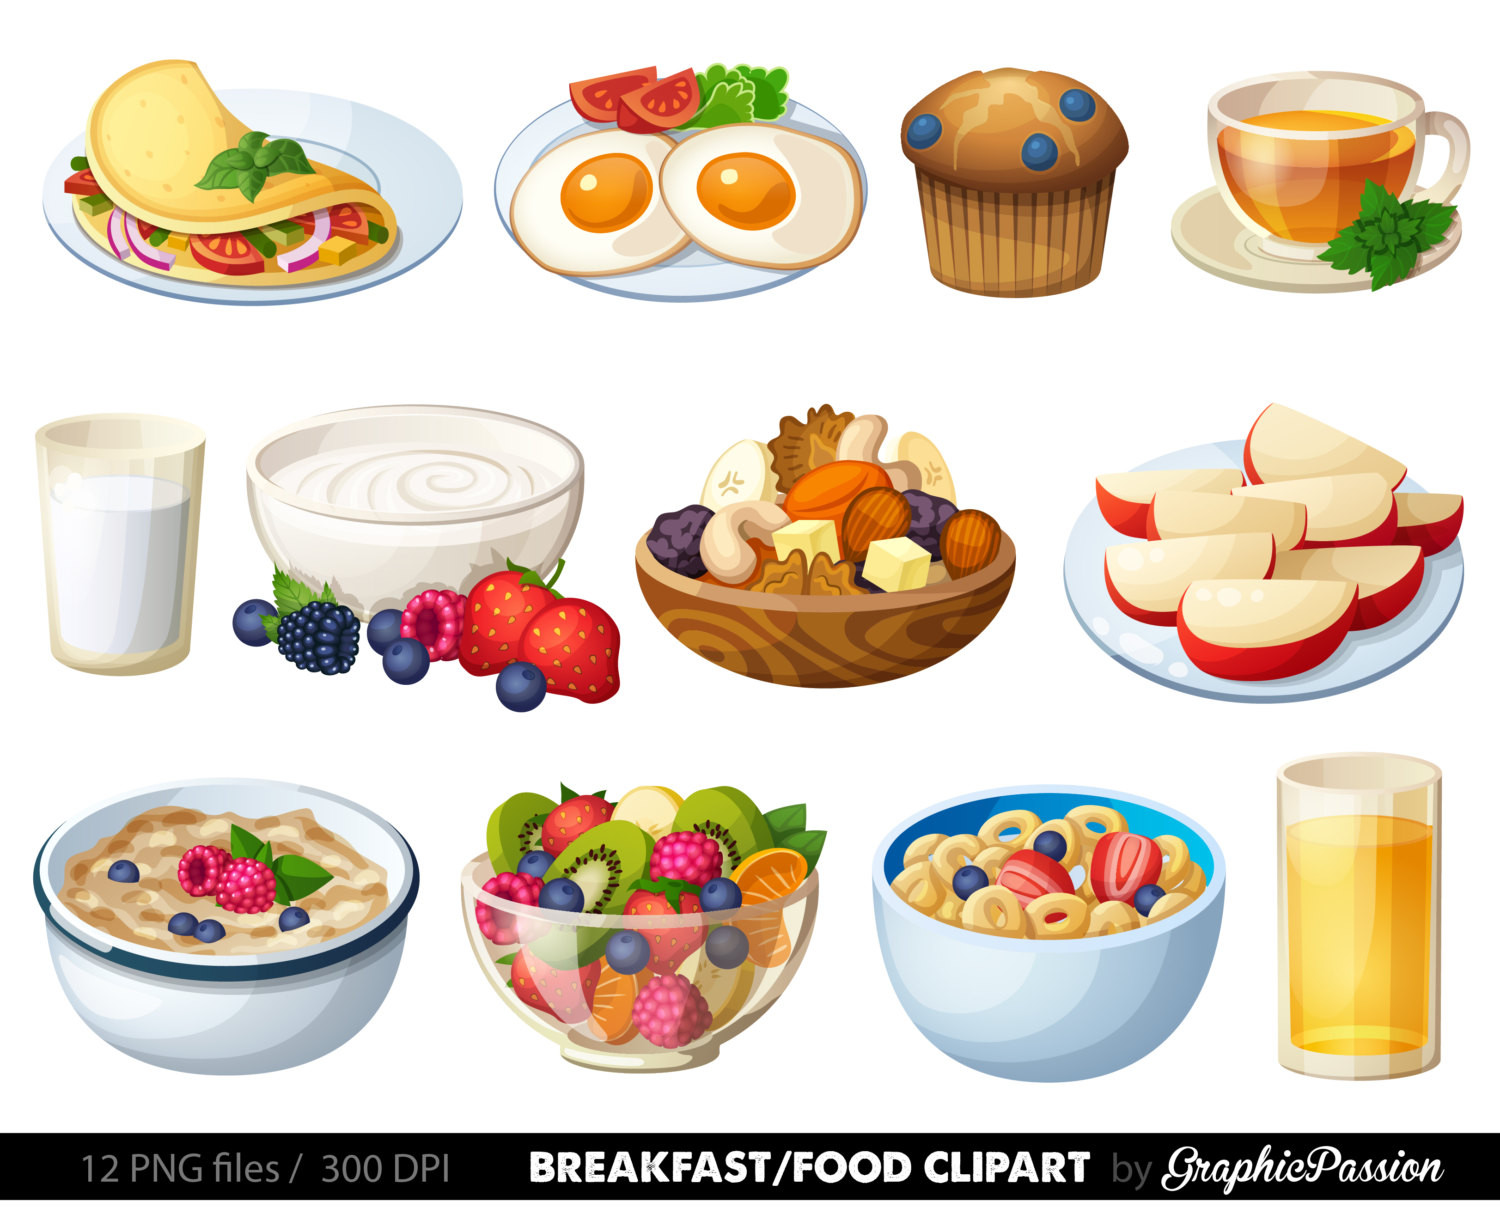 Healthy Breakfast Clipart  Meal clipart breakfast Pencil and in color meal clipart